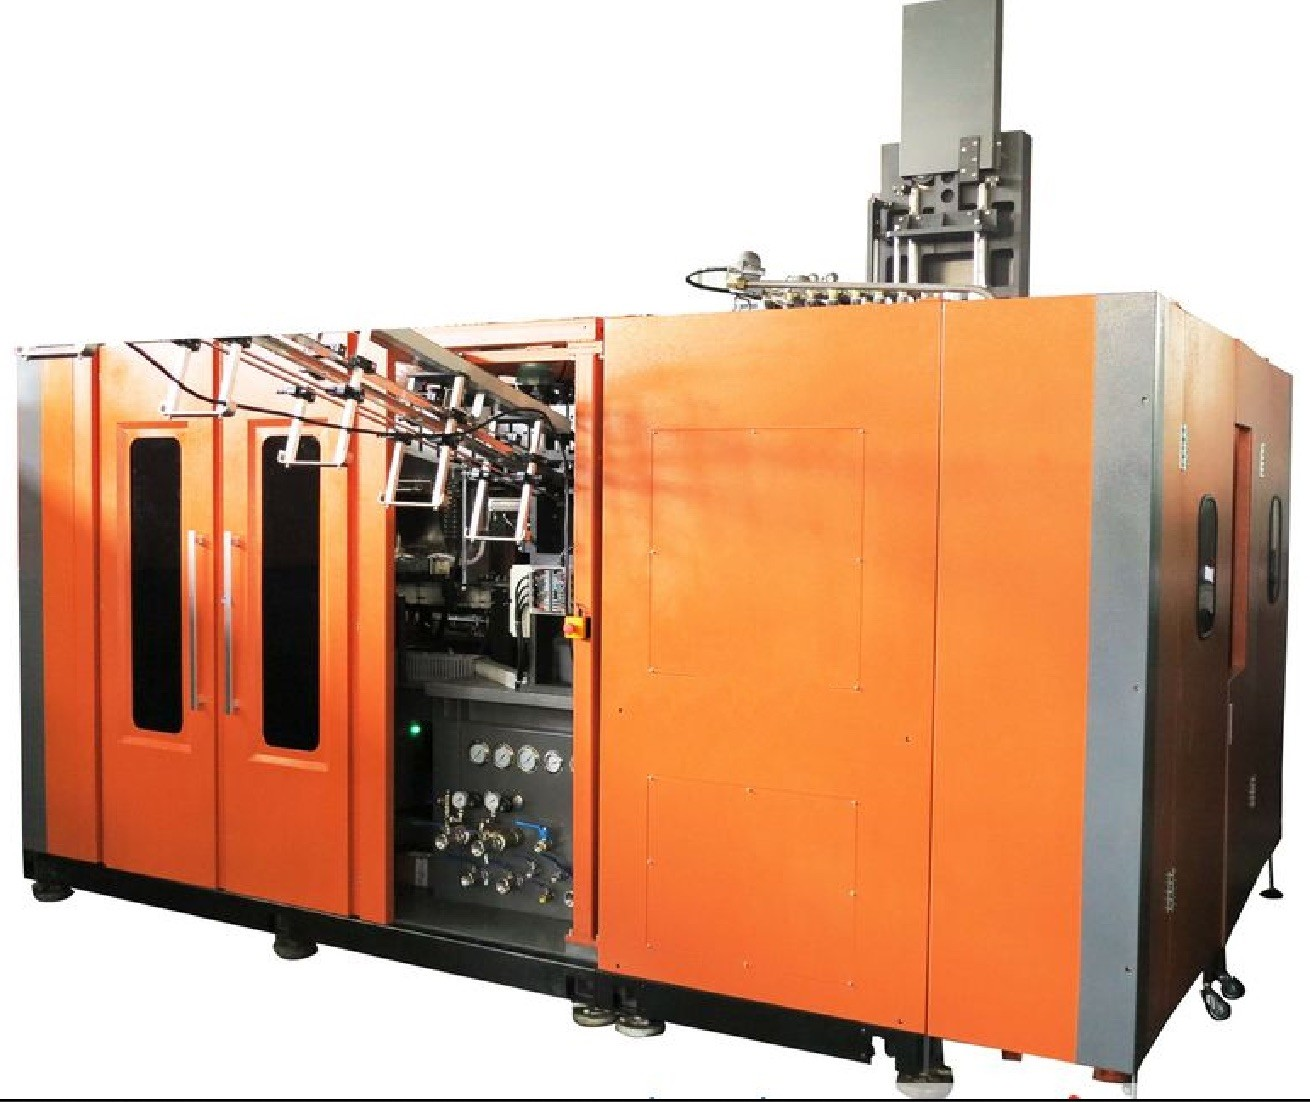 Single Stage One Step Extrusion Blow Molding Machine 4 Cavity 250 ml-2000 ml Round bottle